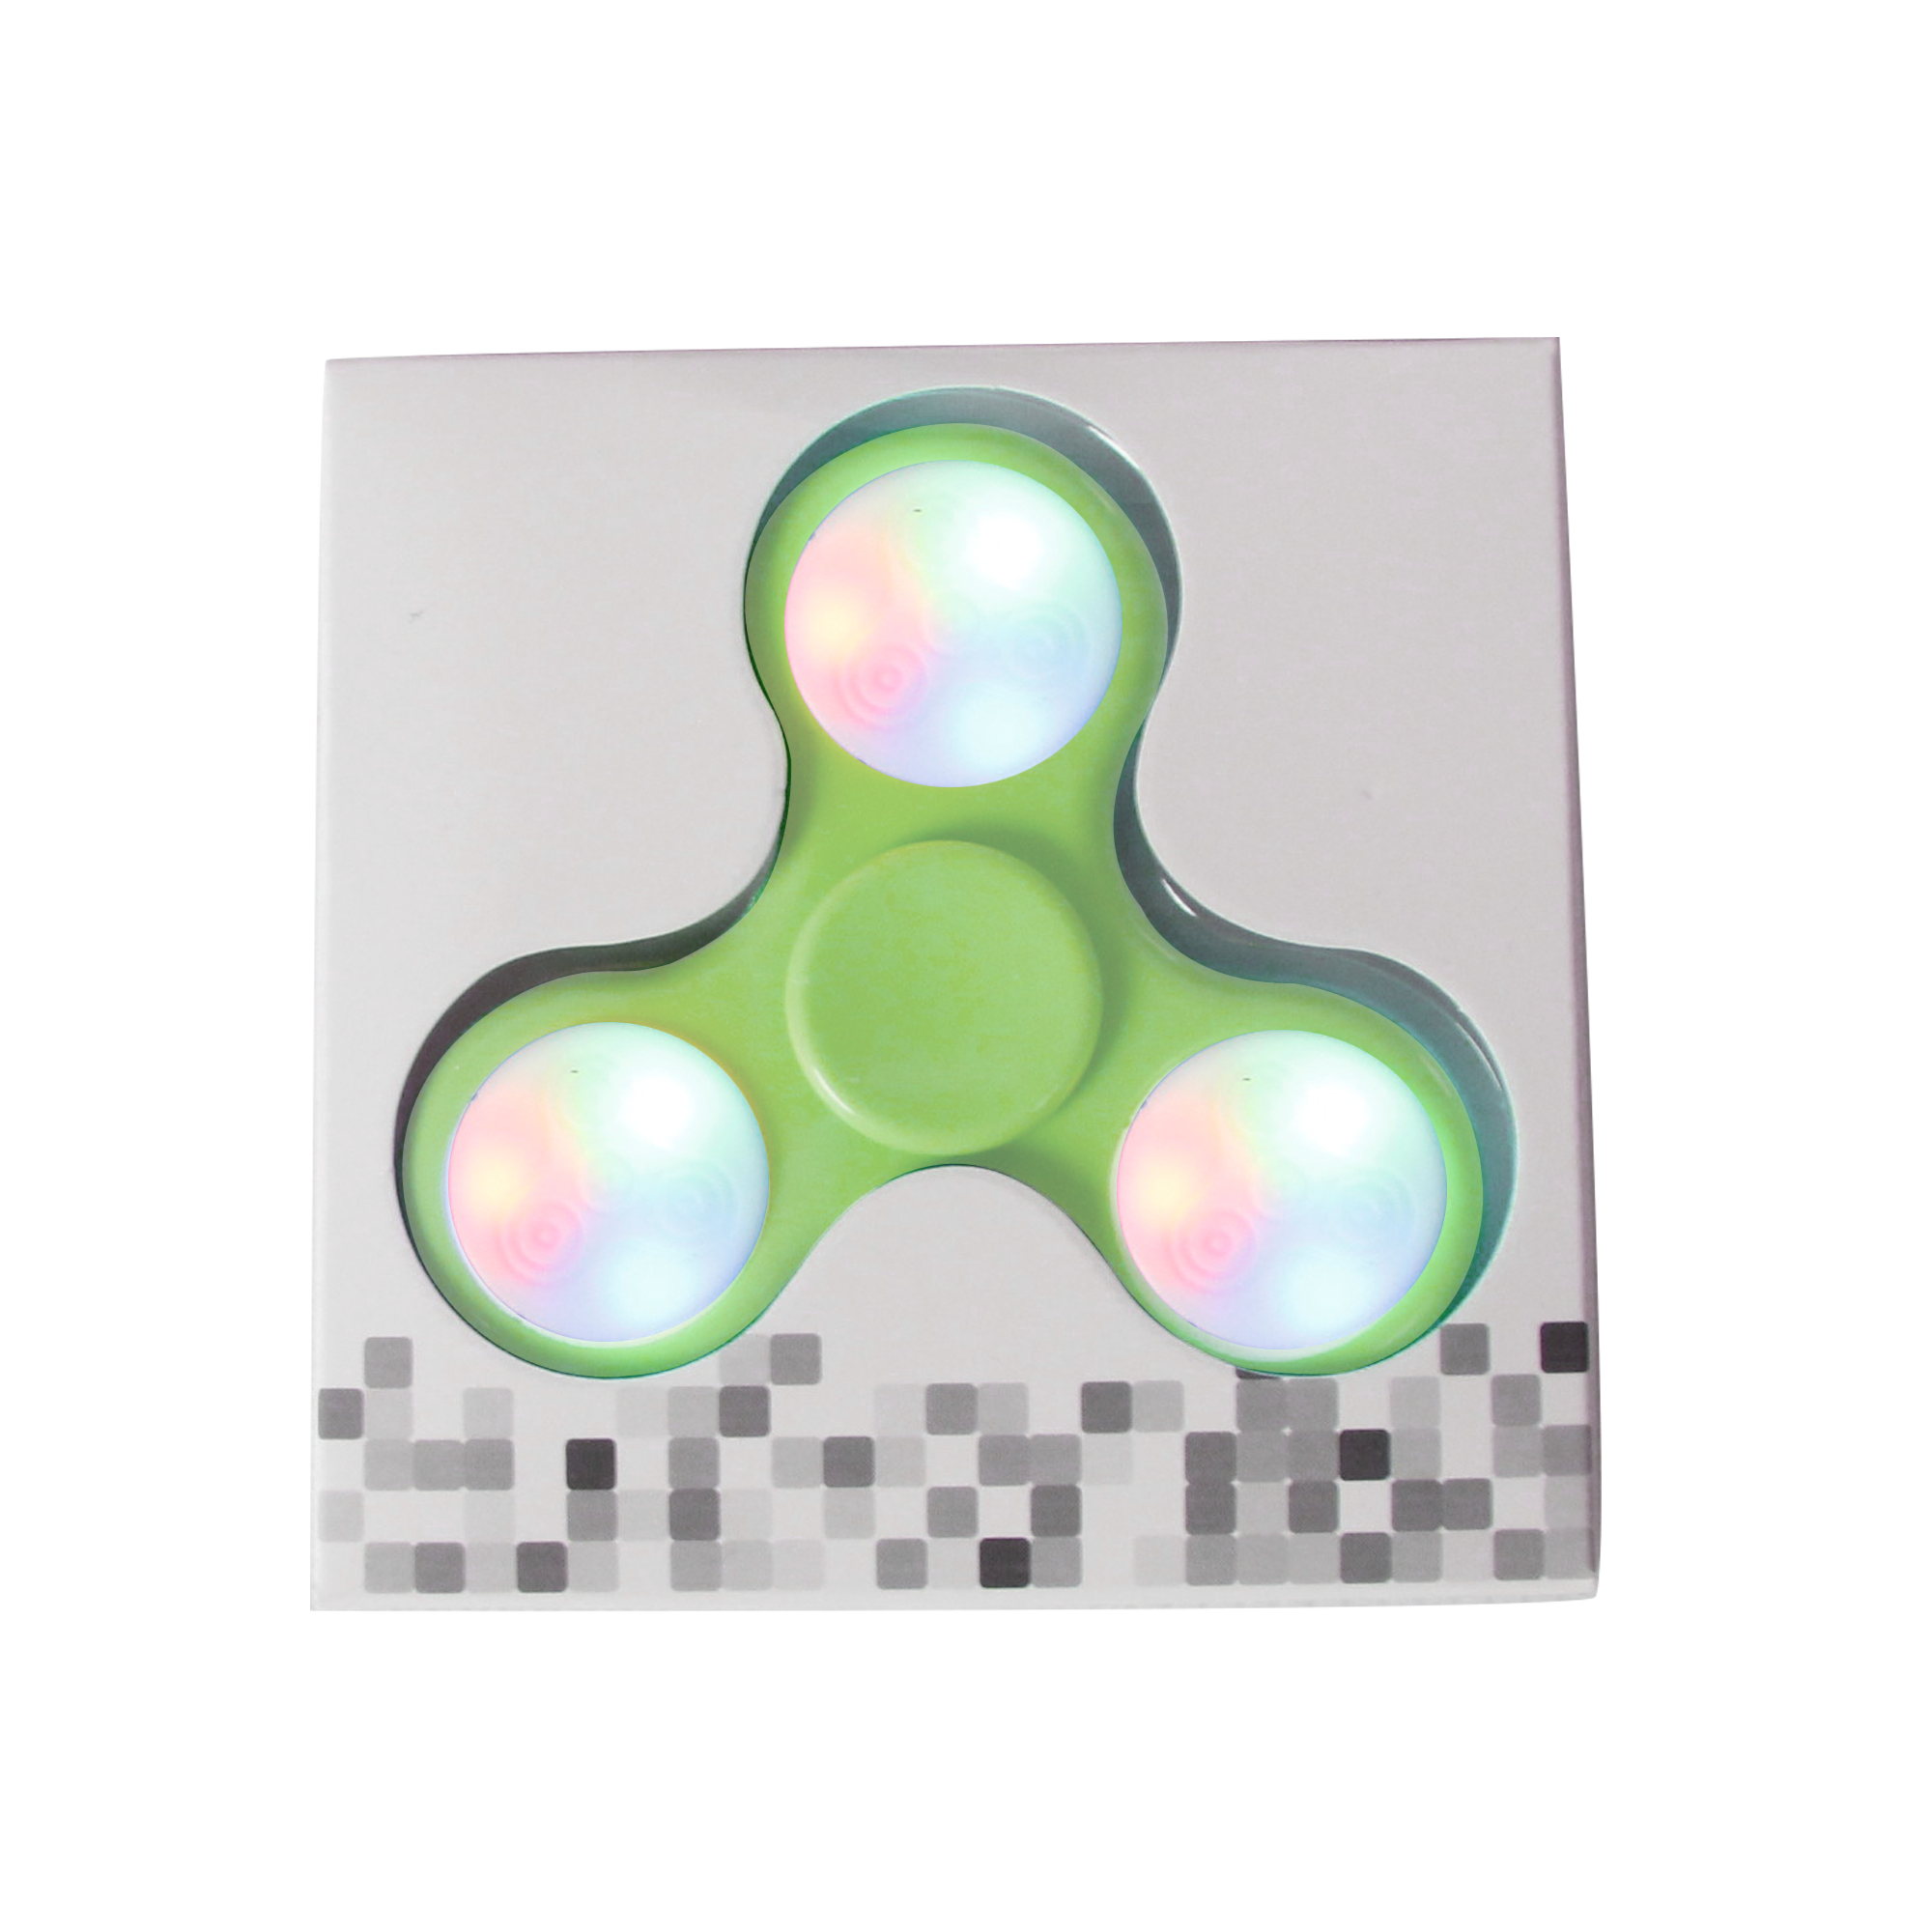 LED Push Button Finger Spinner with 9 LEDs - Green